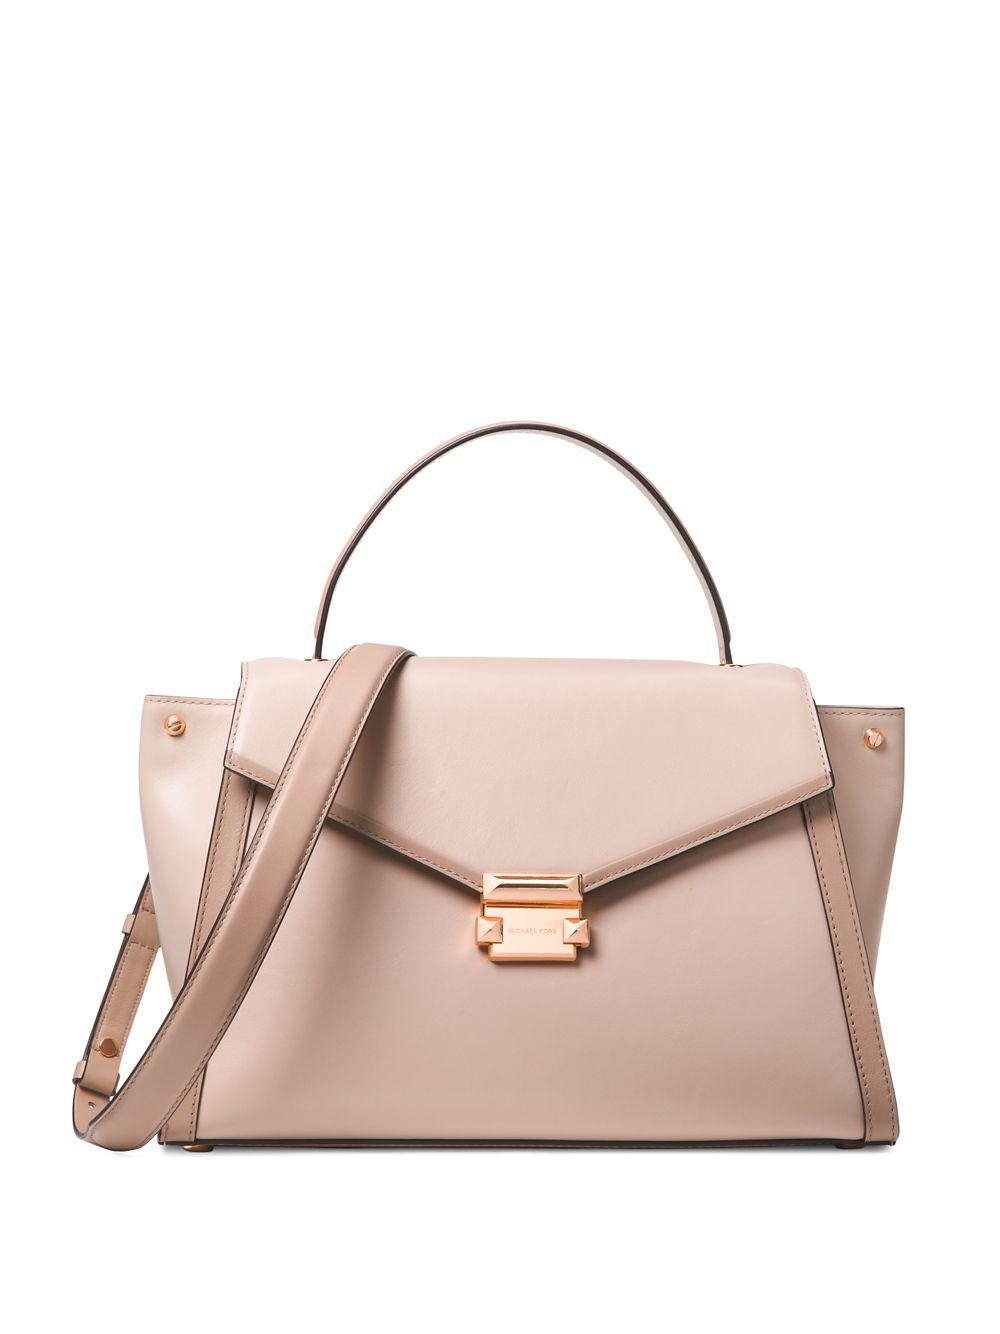 19a8753a9c4f MICHAEL Michael Kors. Women s Pink Whitney Colorblock Top-handle Leather  Satchel